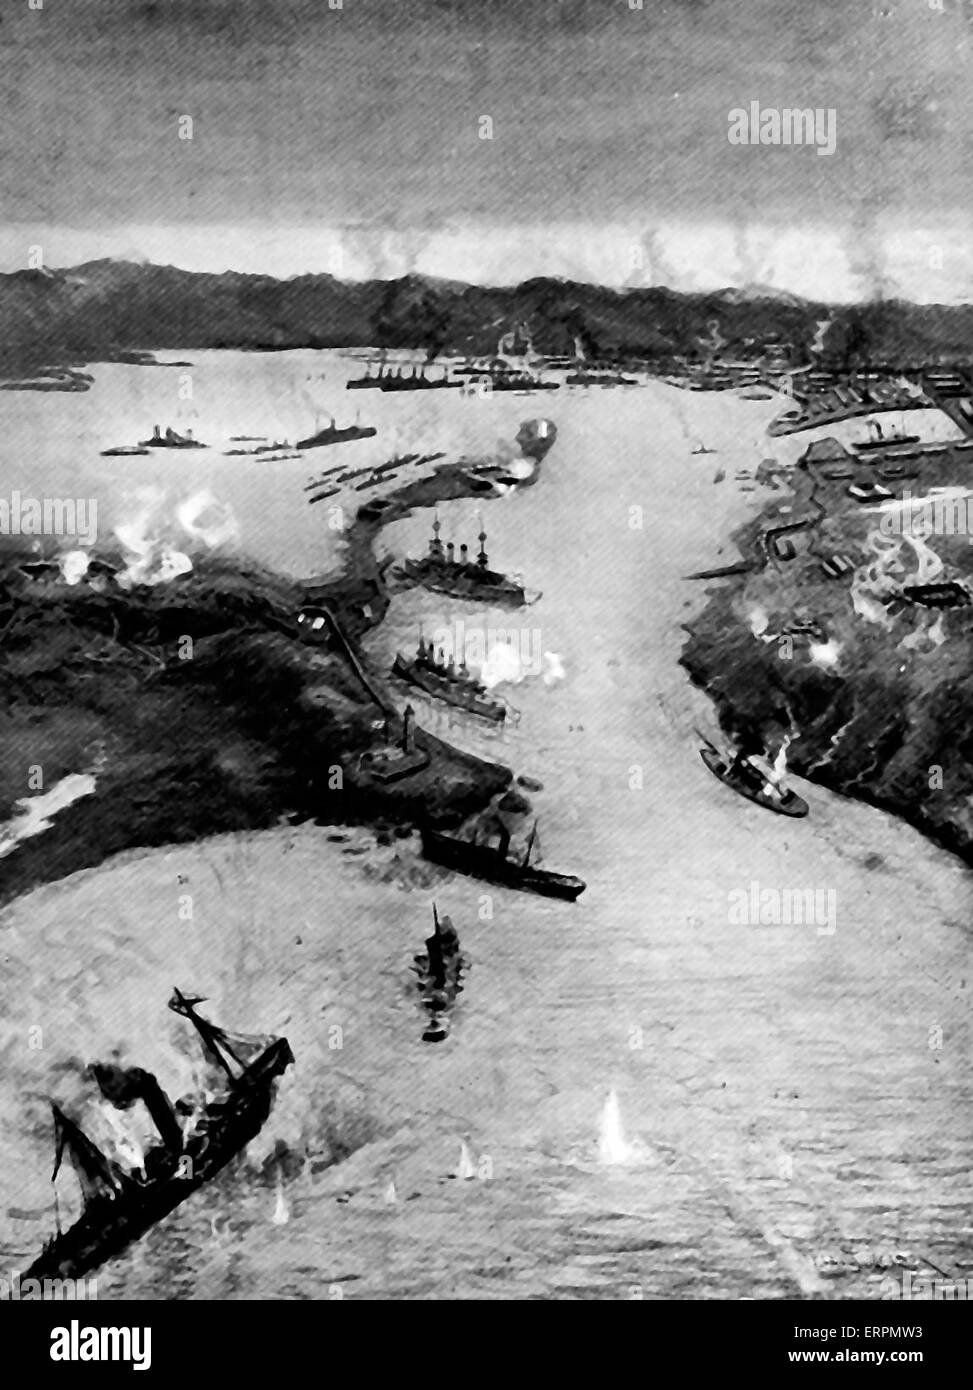 Birds eye view of Port Arthur, showing vessels sunk in entrance - Russo - Japanese War, 1904 - Stock Image